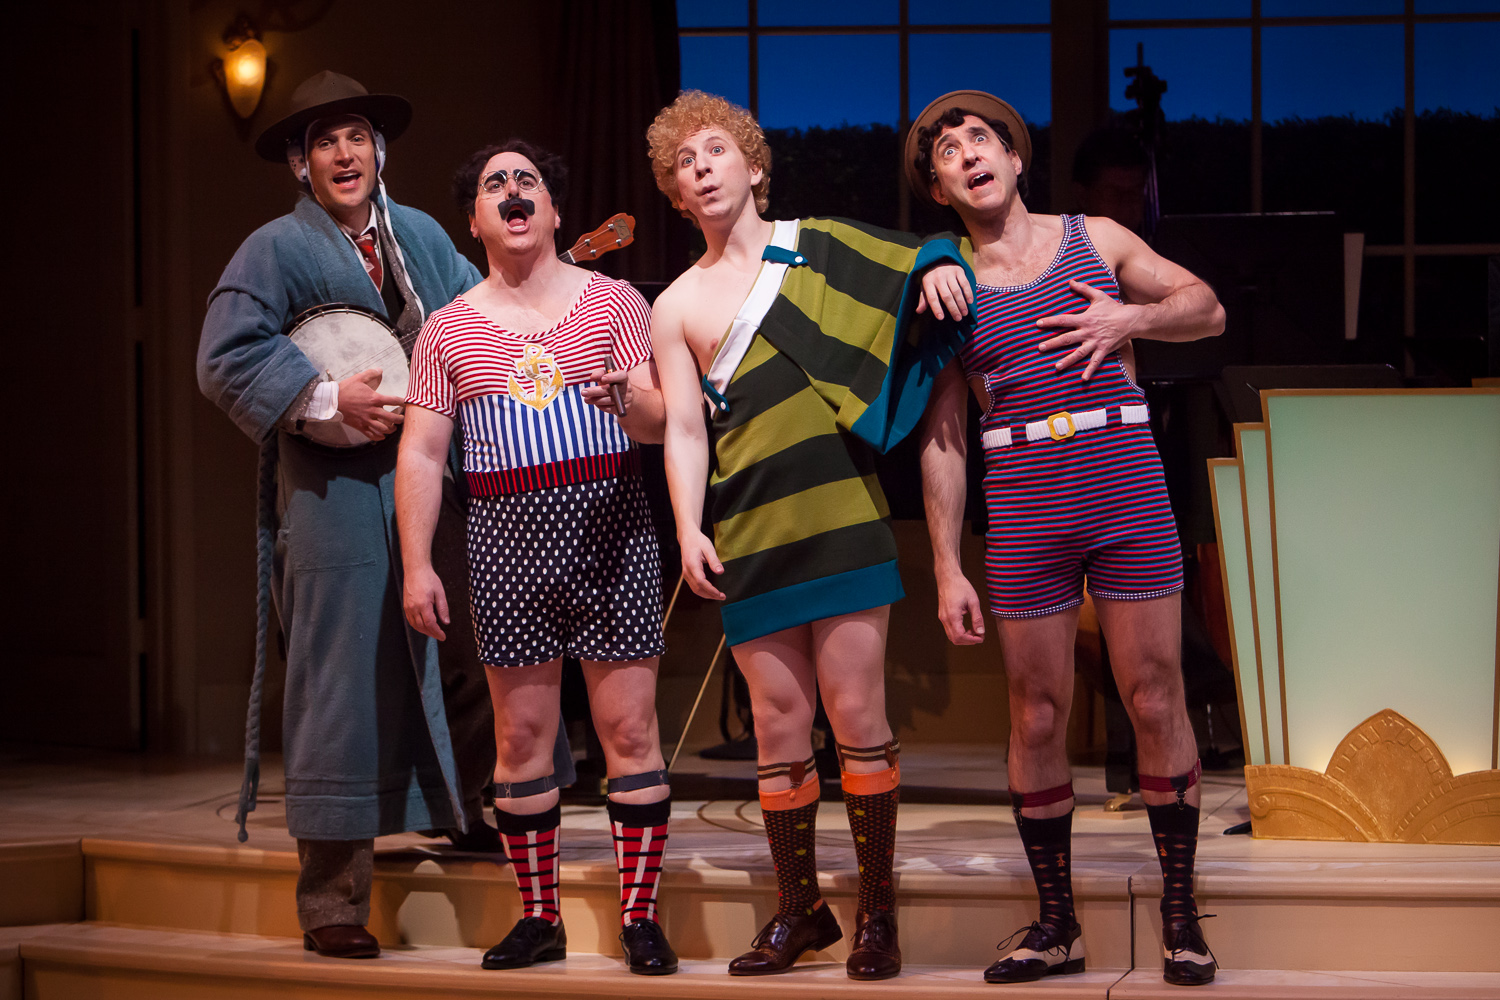 Scott McLean, Jim Ferris, Jonathan Randall Silver and Jonathan Brody in ANIMAL CRACKERS at the Denver Center Theatre Company, captured by photographer Jennifer Koskinen, Merritt Design Photo